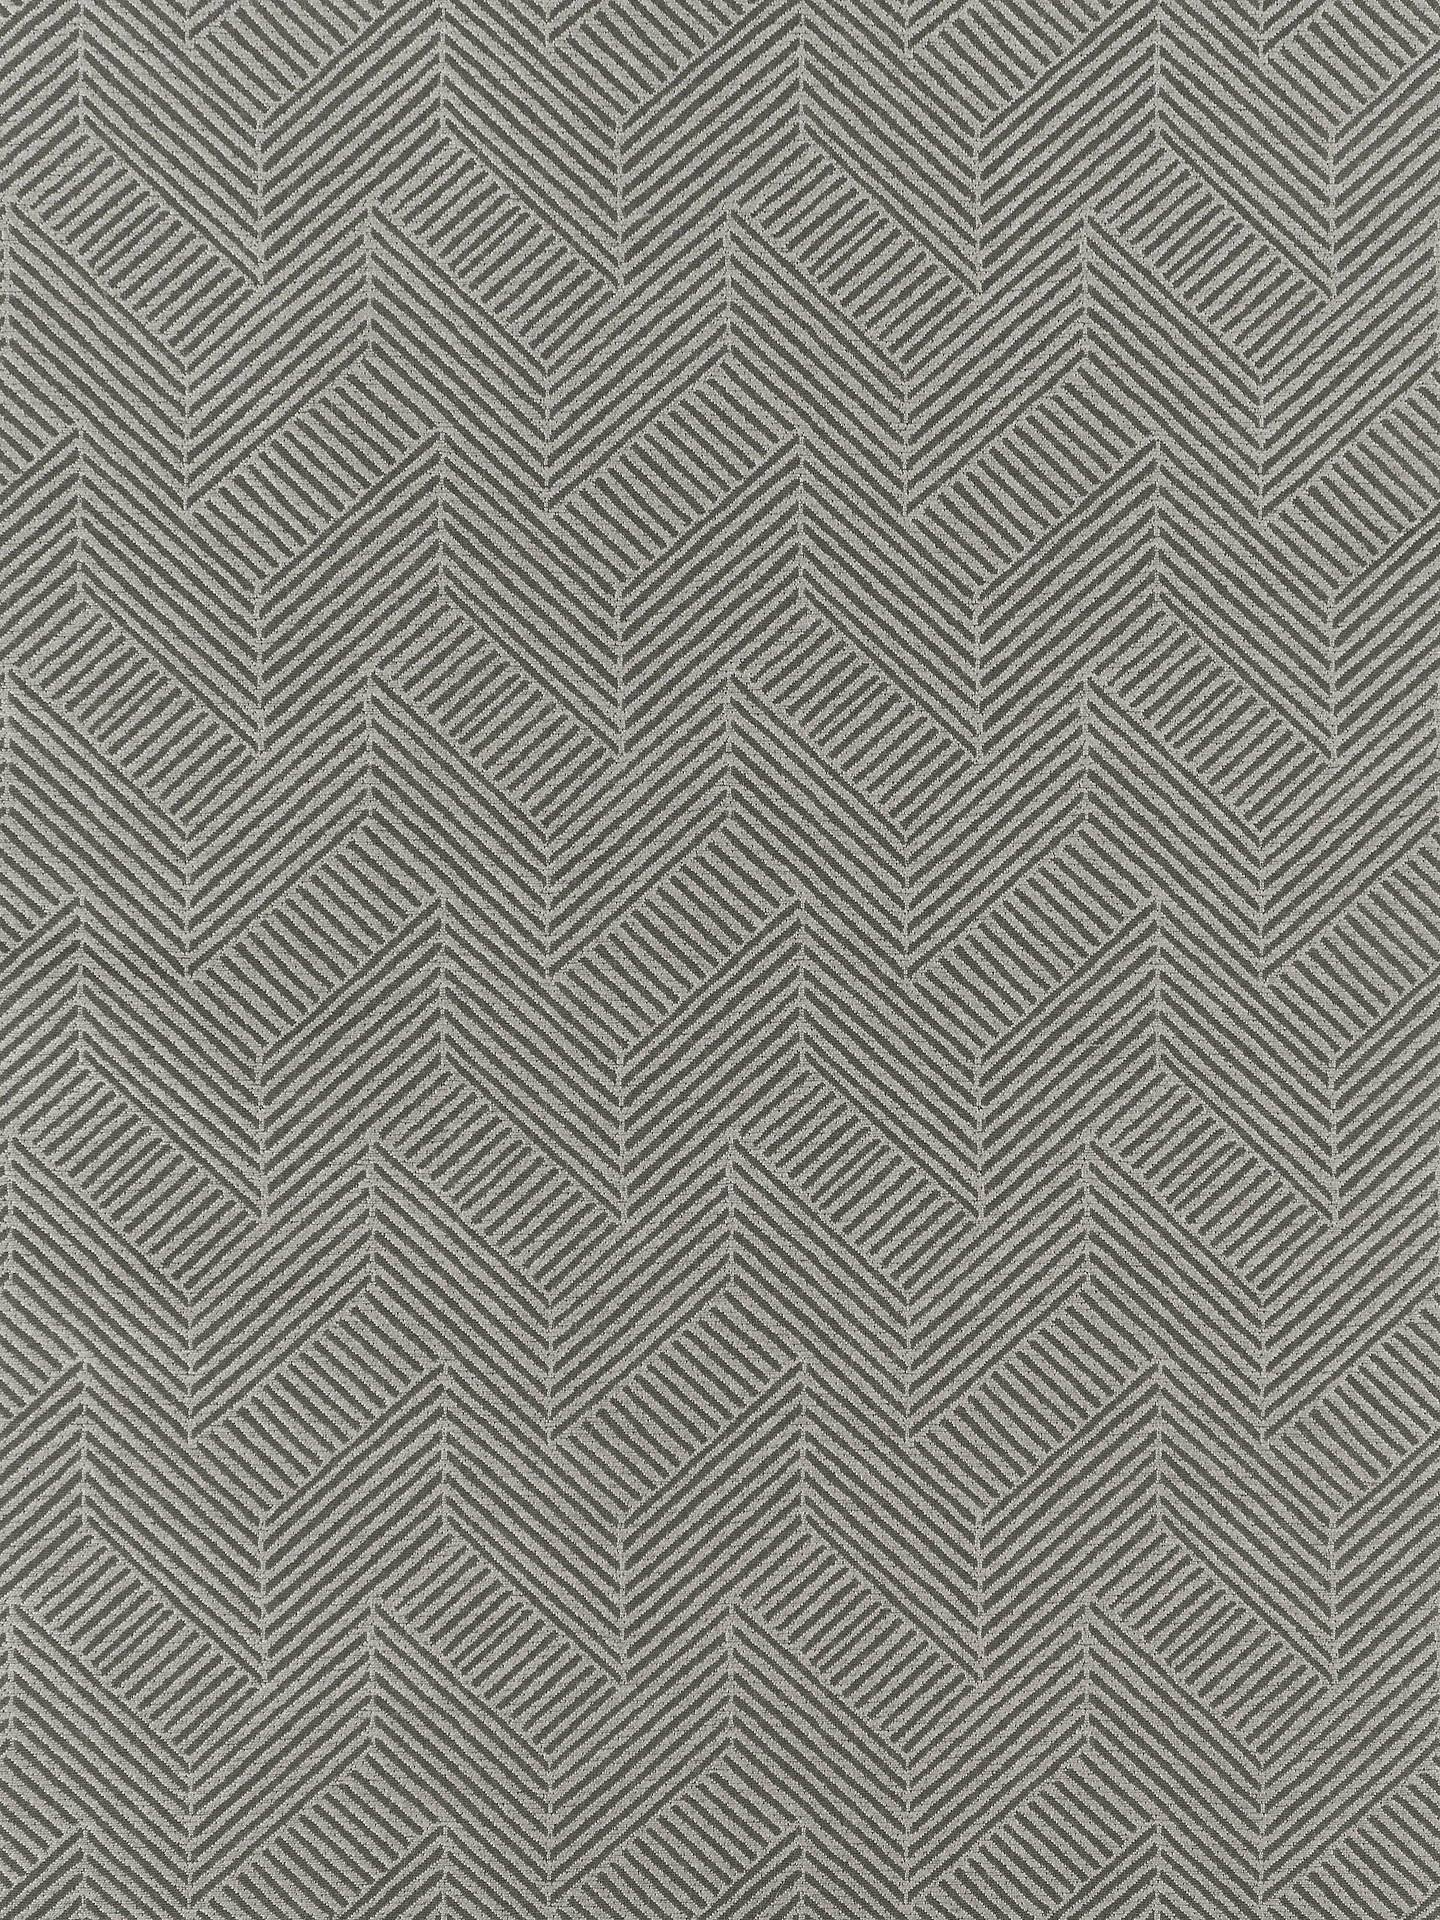 Buy John Lewis & Partners Esher Furnishing Fabric, Steel Online at johnlewis.com